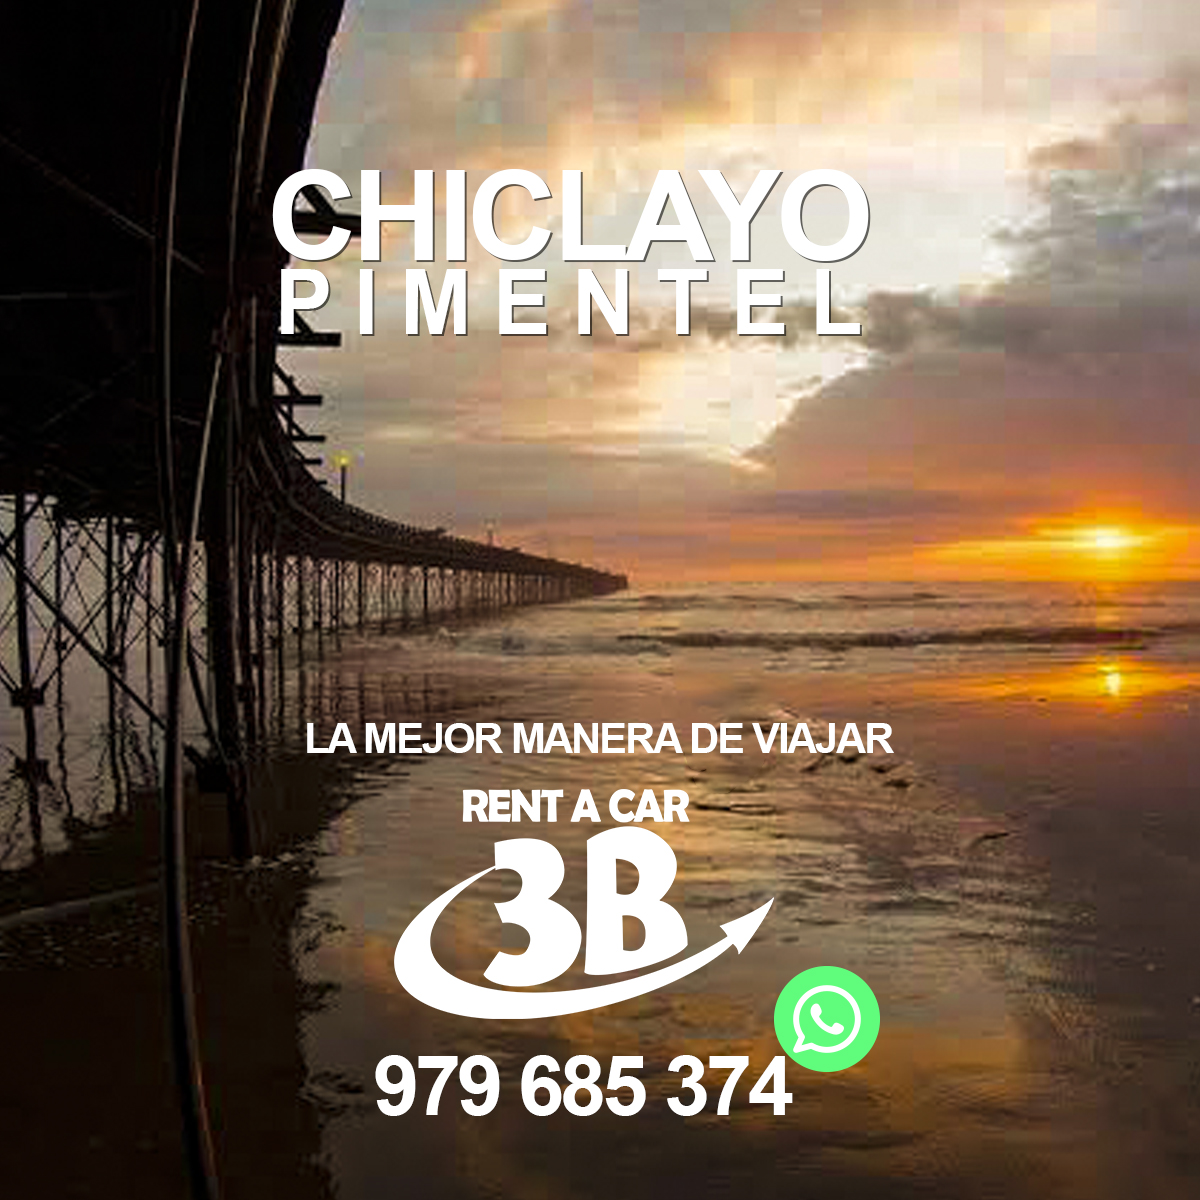 Rent a car Chiclayo